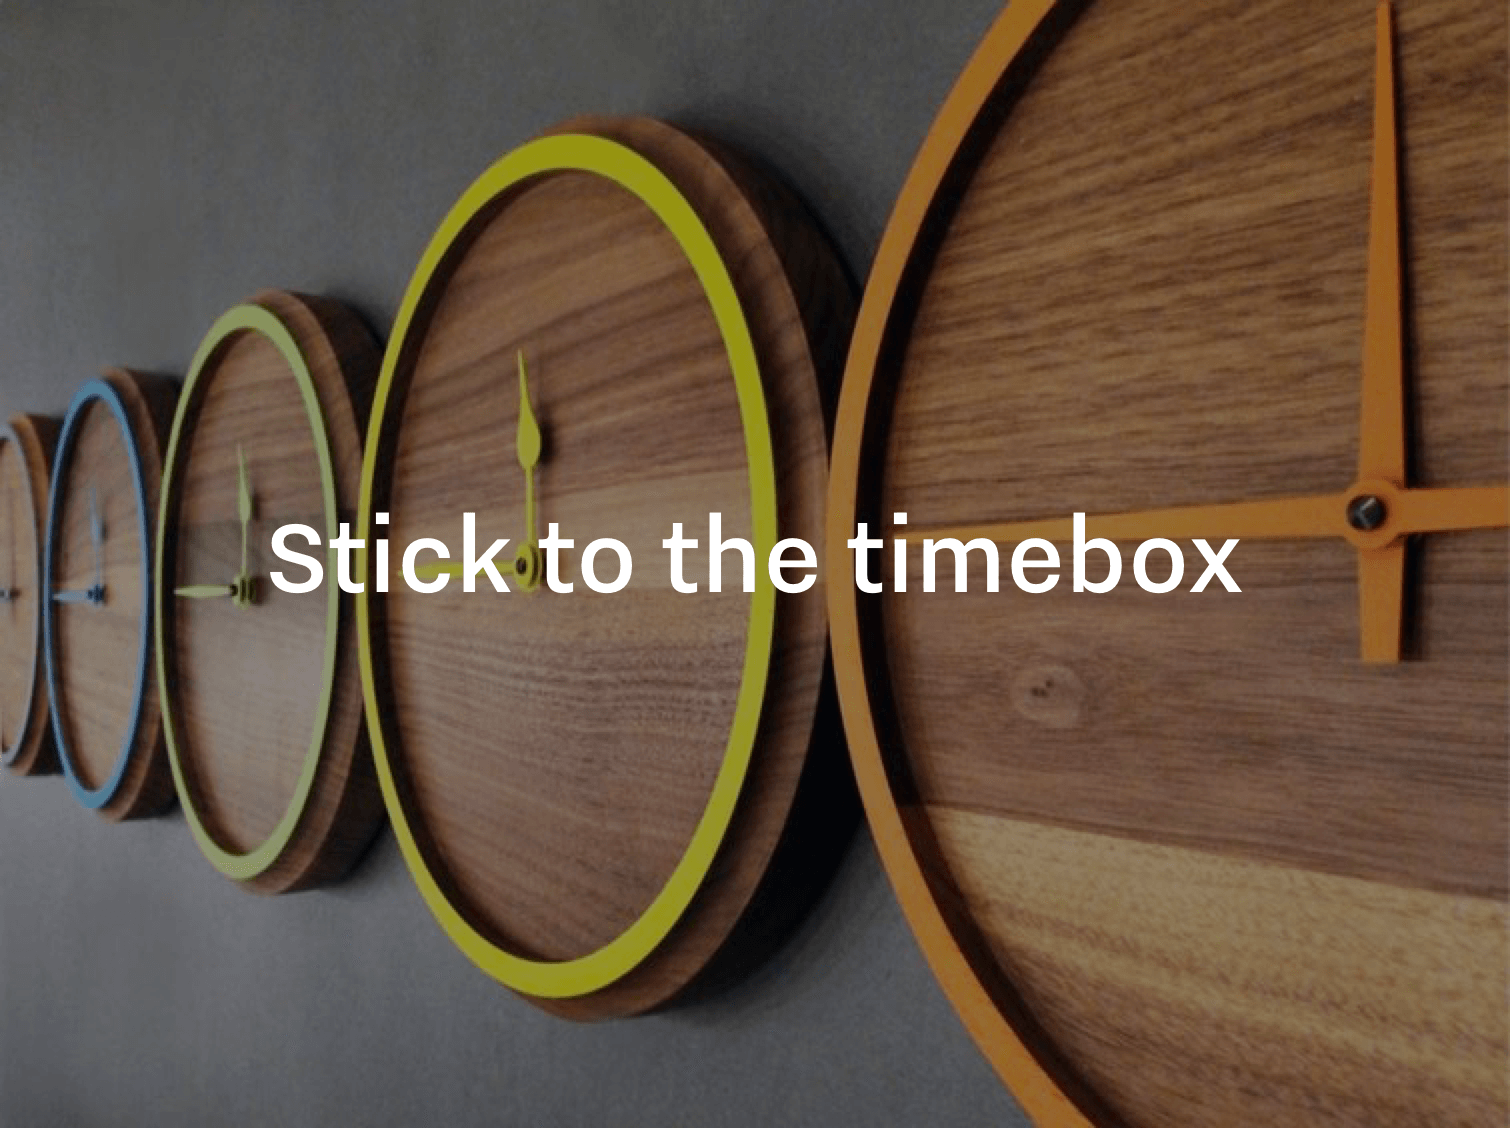 Stick to the timebox